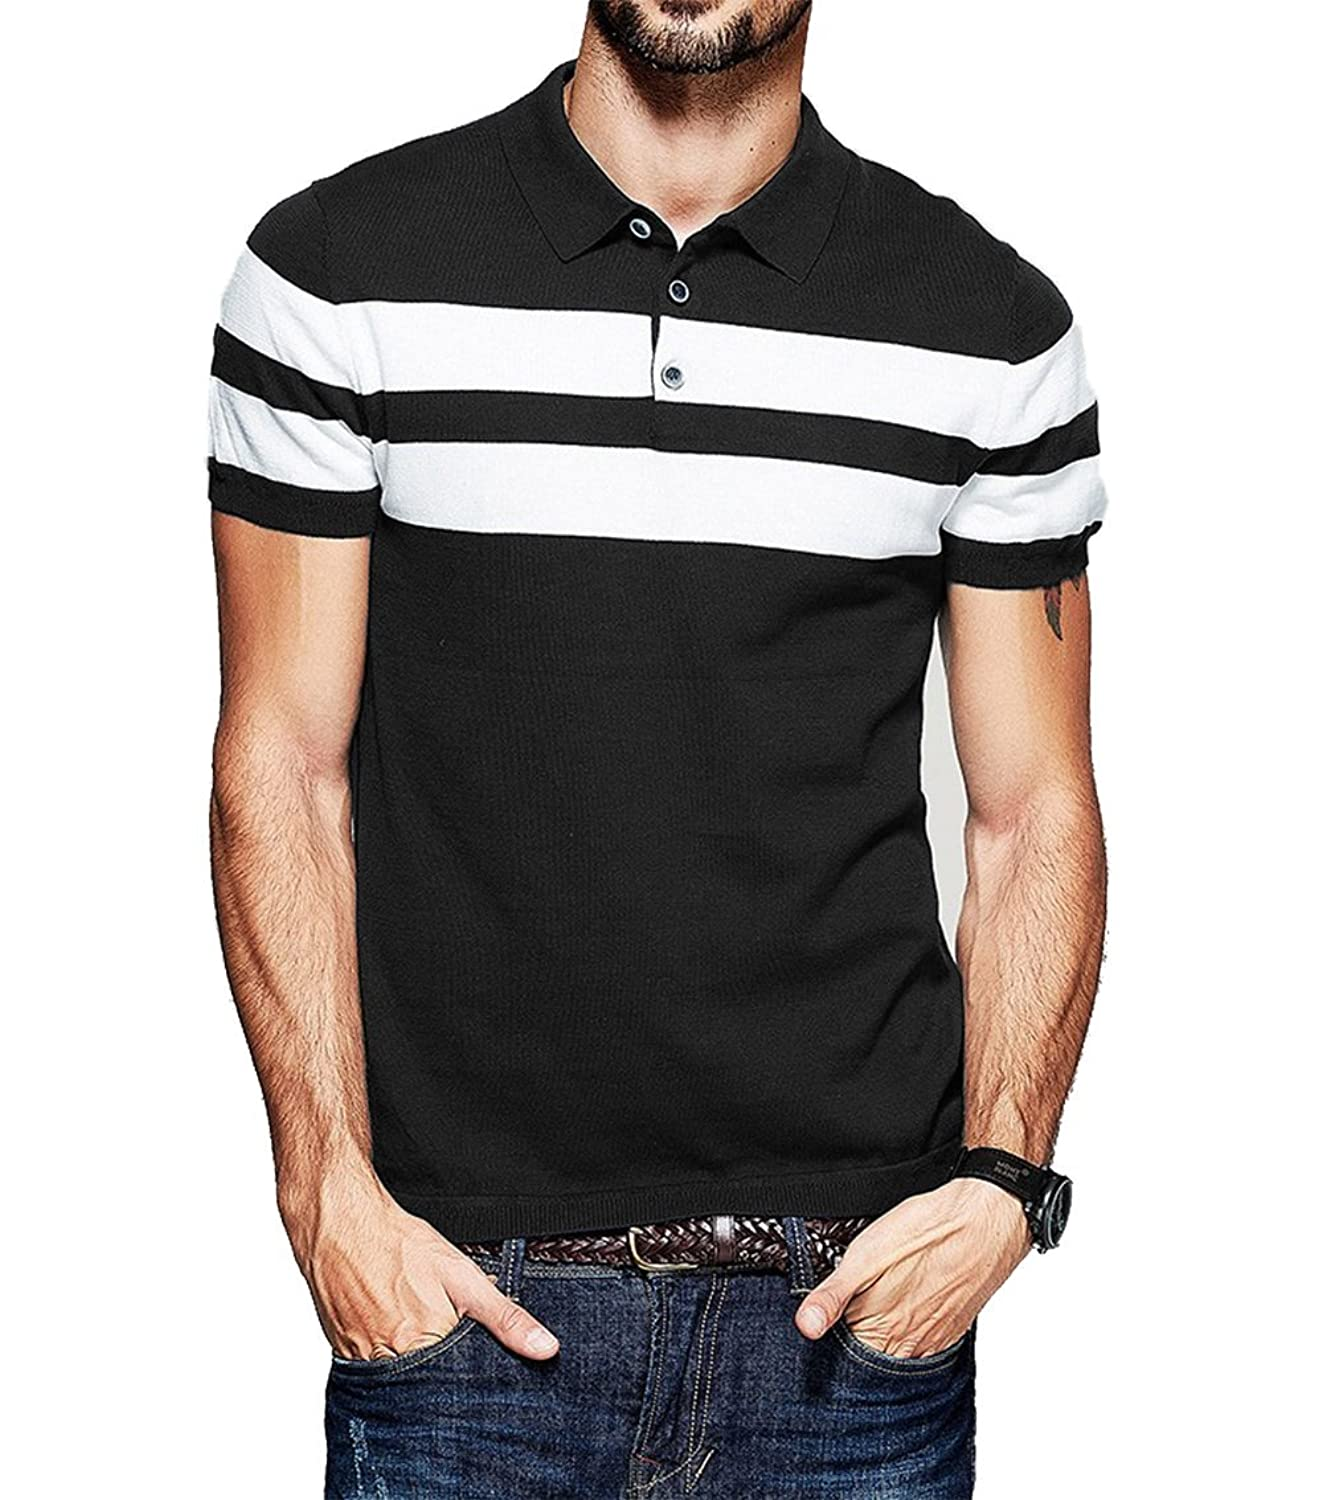 Shirt design gents - Fanideaz Men S Half Sleeve Navy Blue With White Contrast Striped Polo T Shirt